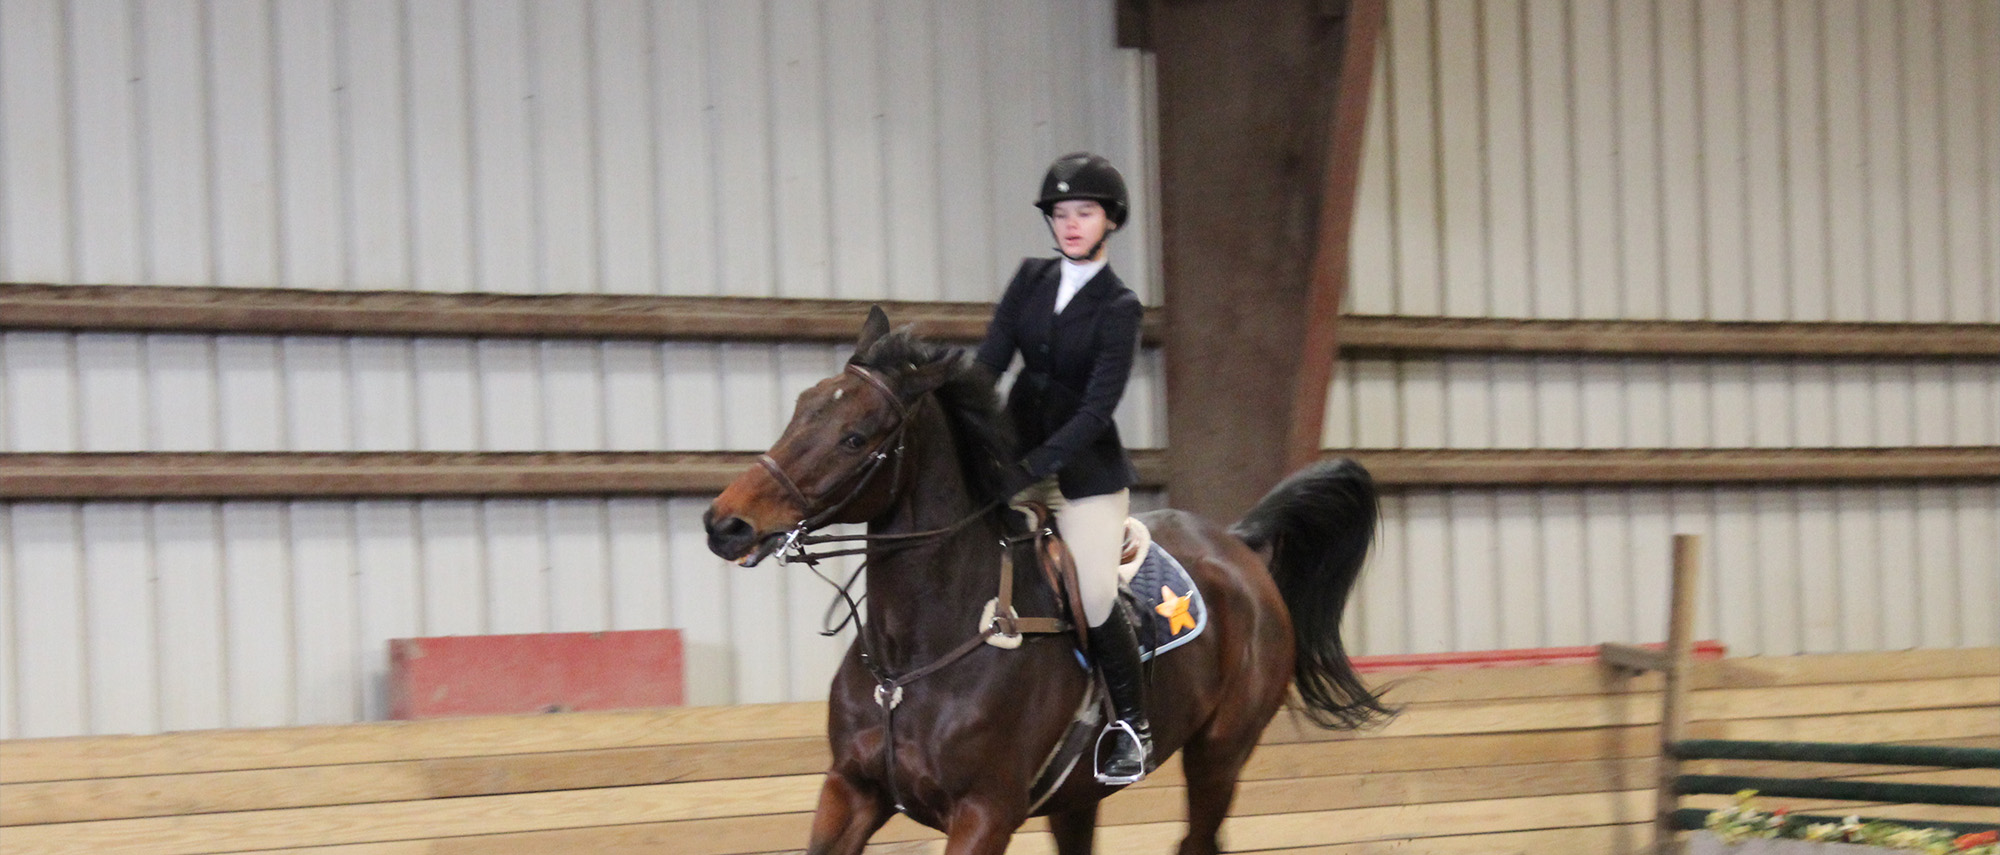 Equestrian opens season at Johnson & Wales